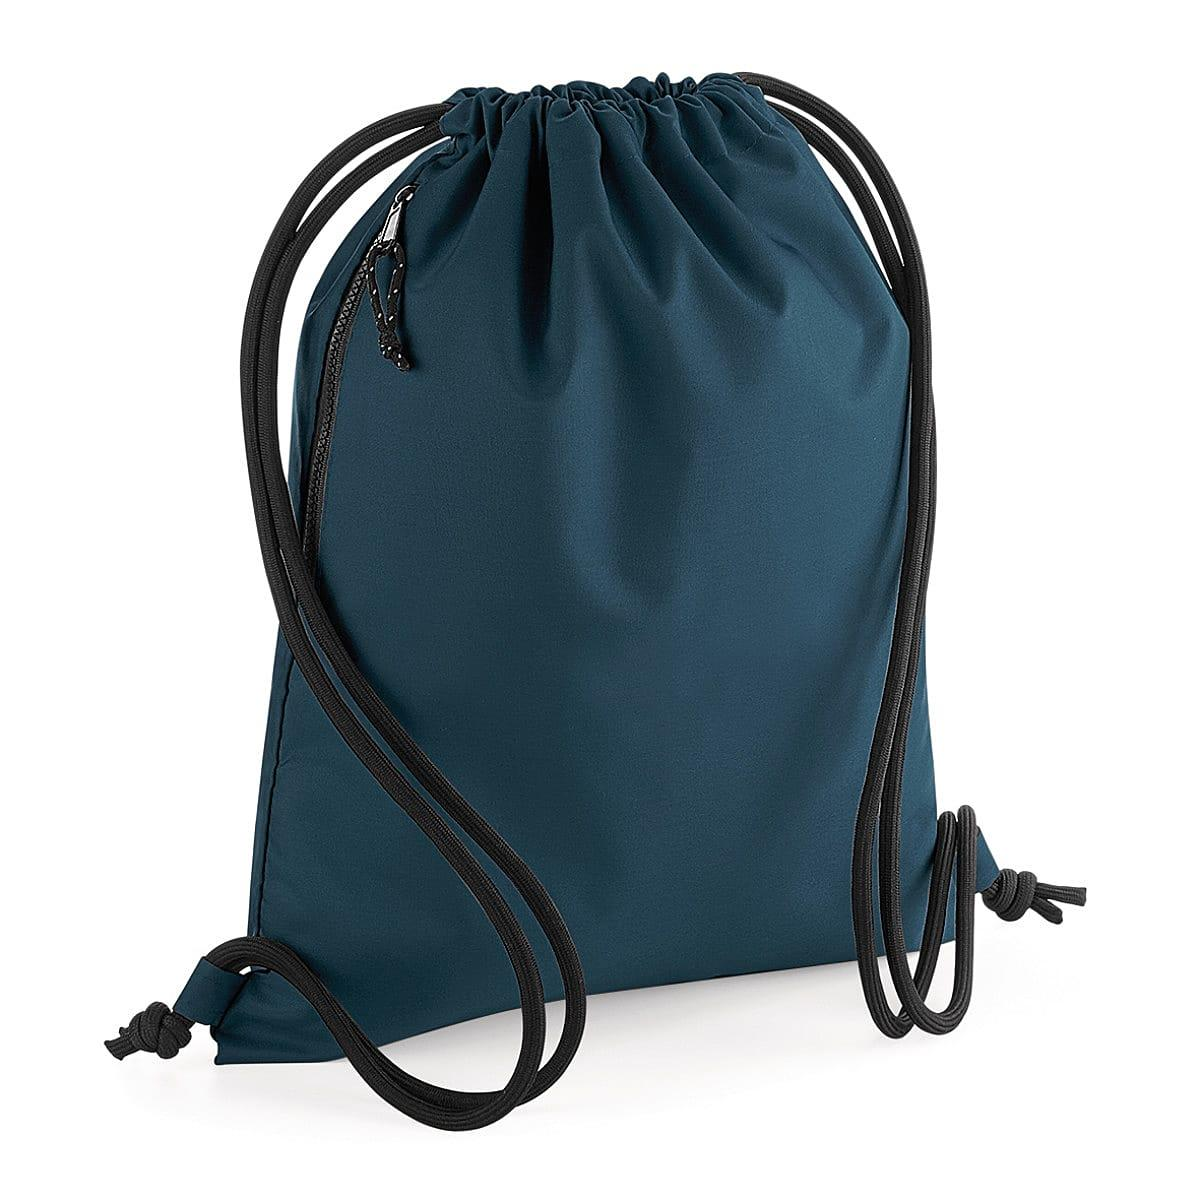 Bagbase Recycled Gymsac in Petrol (Product Code: BG281)